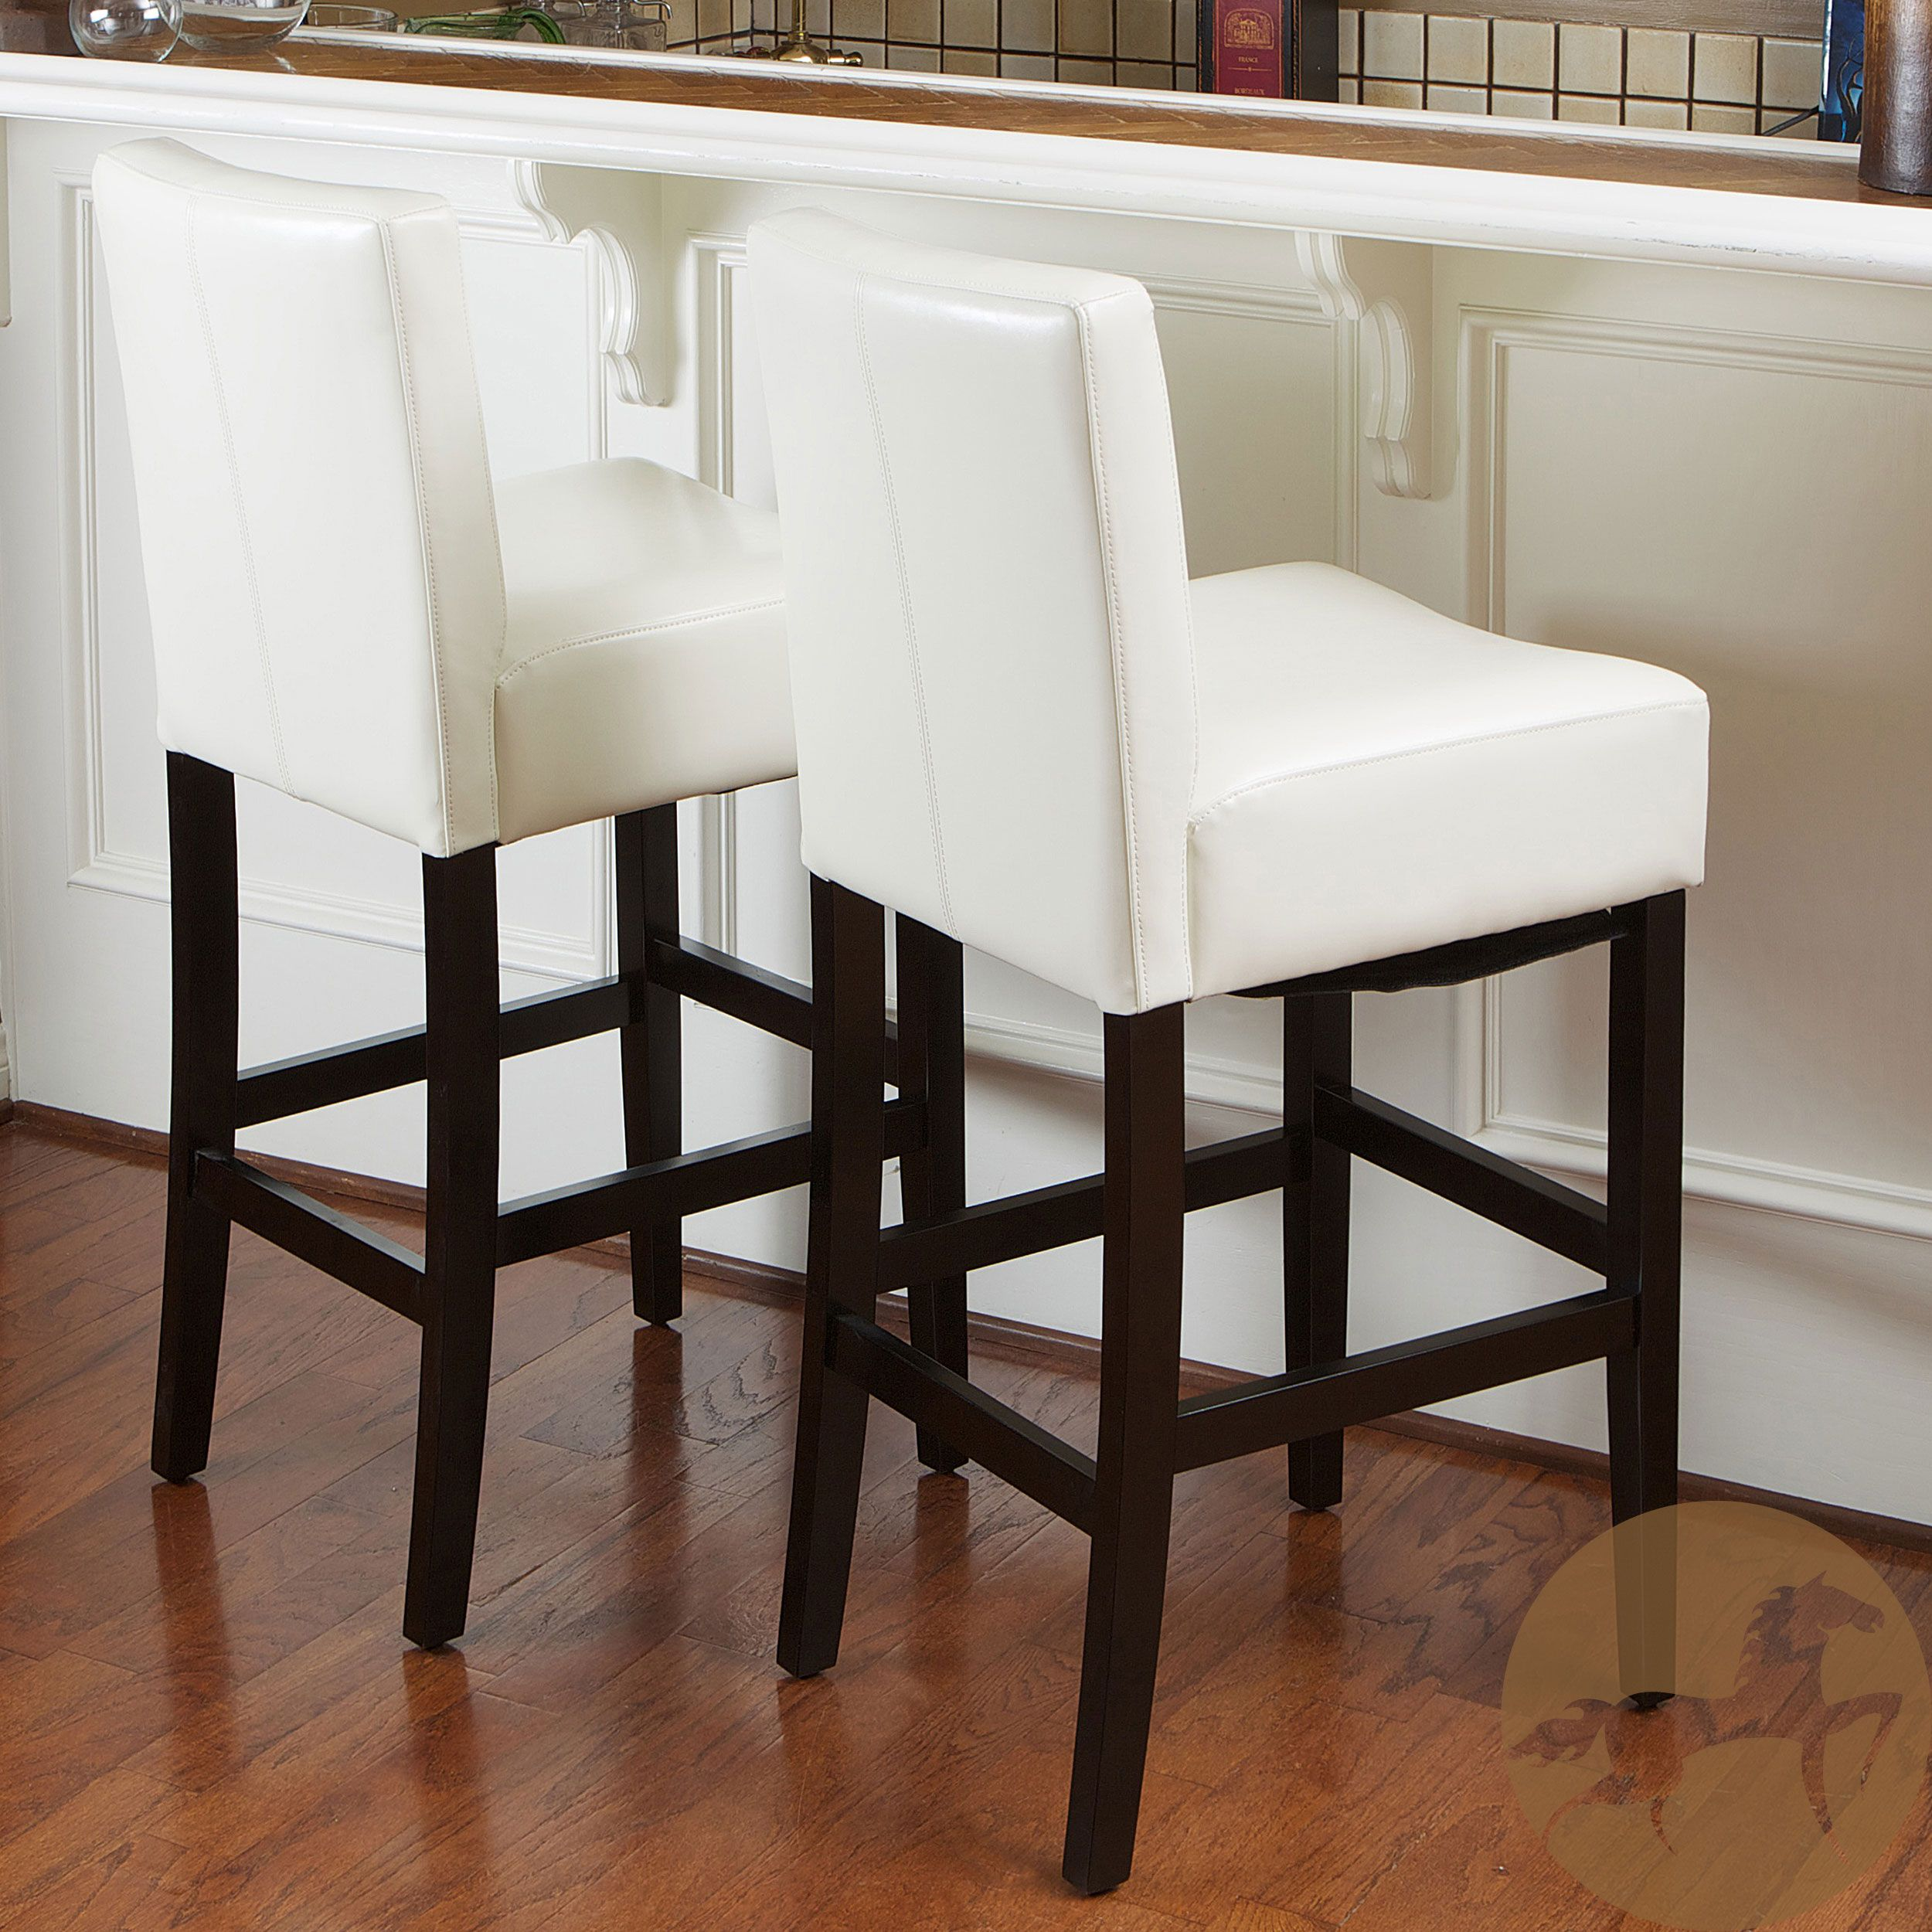 These Lovely Contemporary Bar Stools Provide The Perfect Piece To